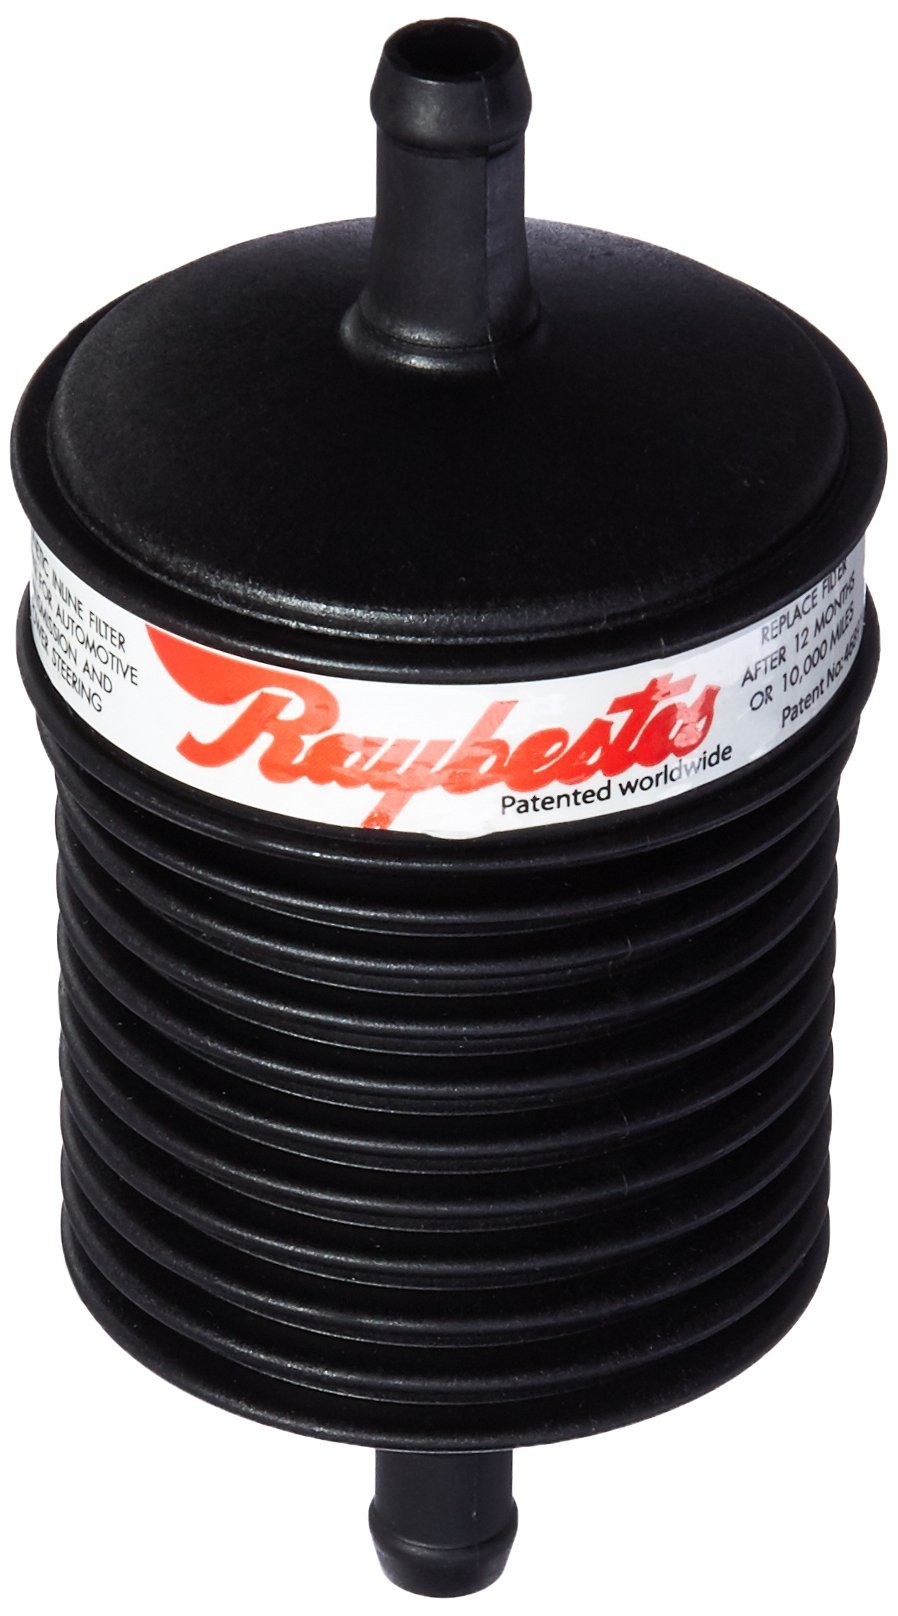 Raybestos Powertrain Inline Magnetic Automatic Transmission Filter 3/8 was suppressed by Raybestos